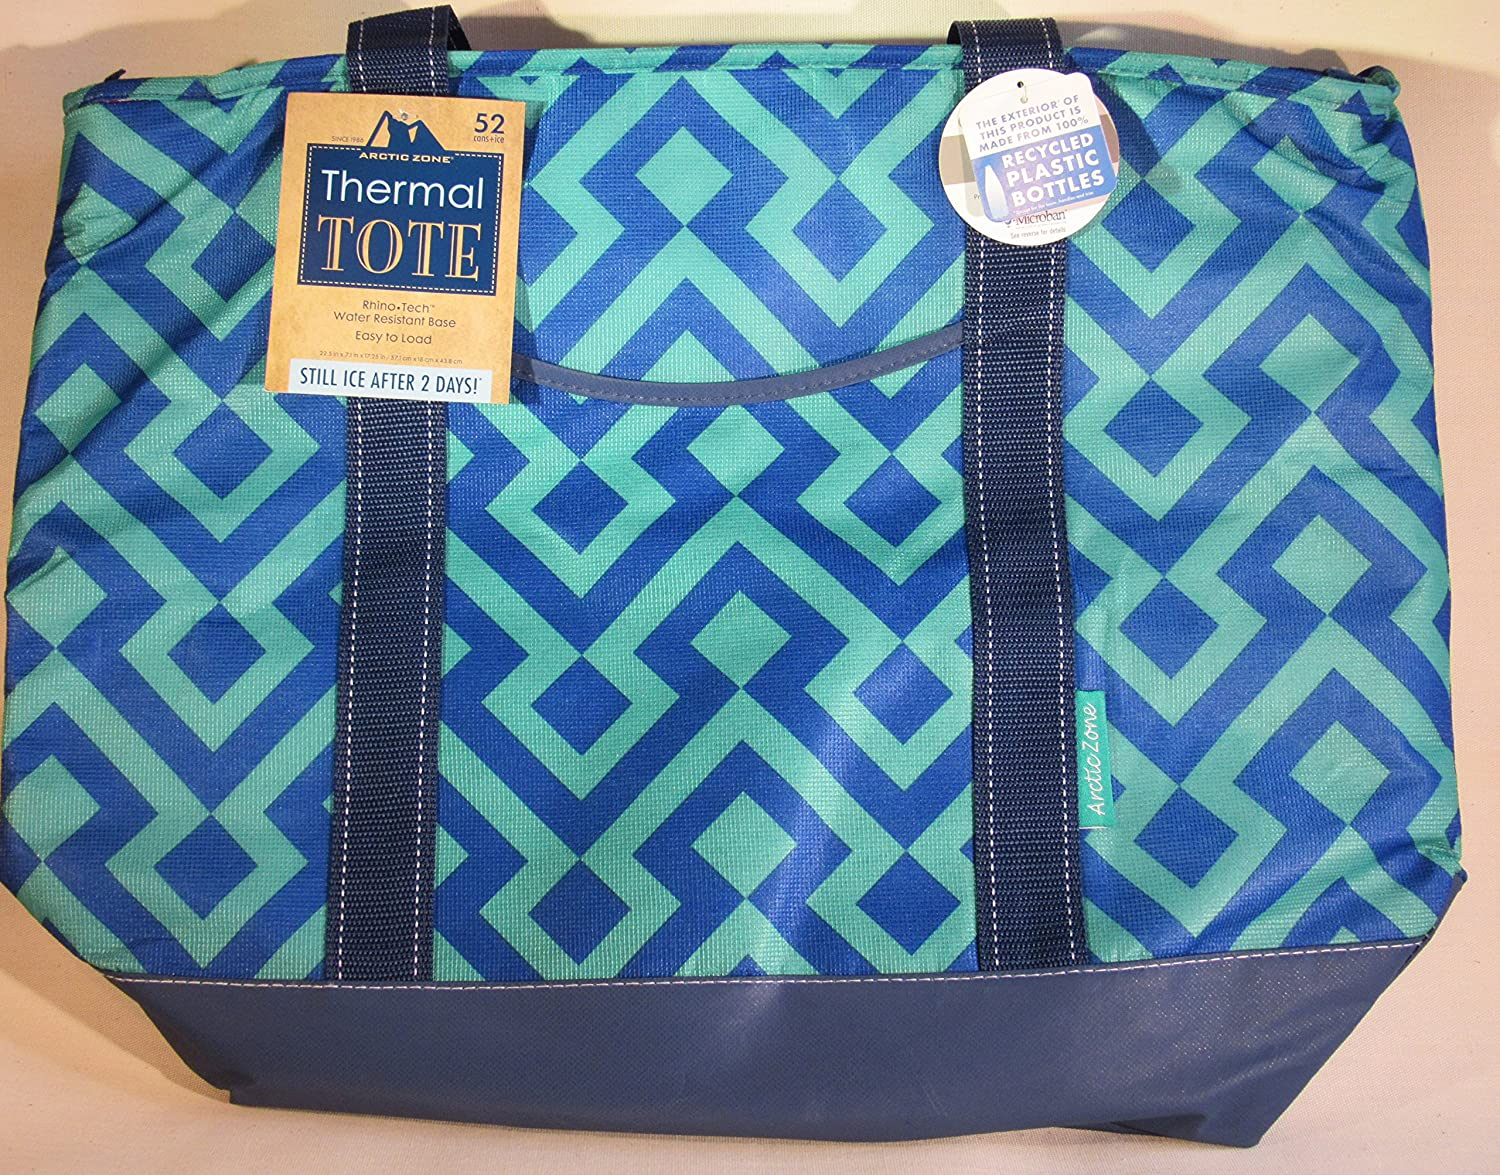 Arctic Zone Thermal Tote - 22.5 x 7.1 x 17.25 - Spring 2016 Colors (Navy/Green Geometric)